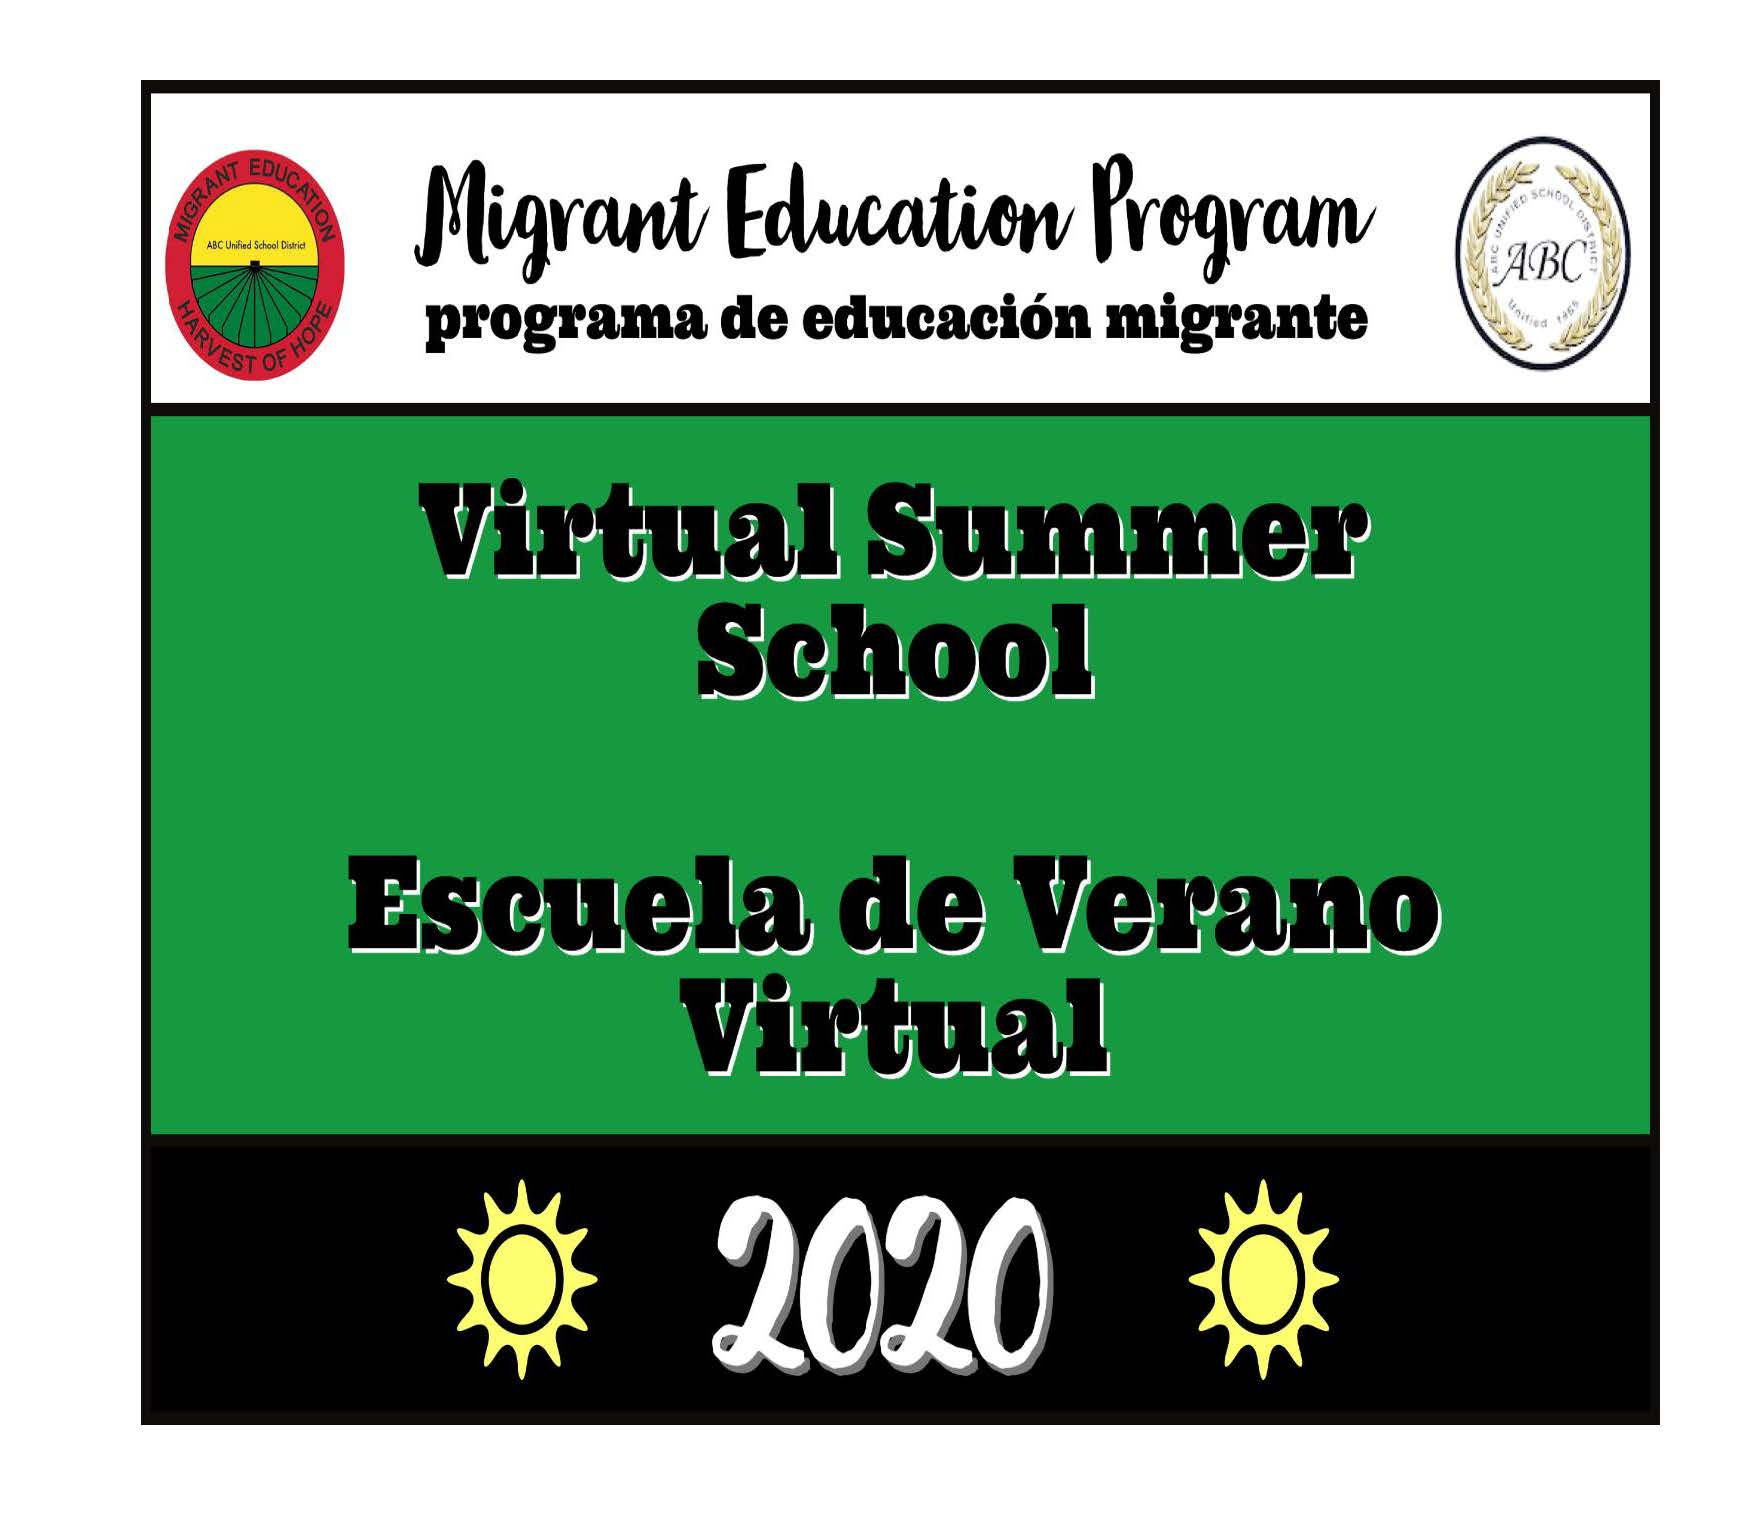 ABC USD Migrant Education Program Virtual Summer School 2019-2020